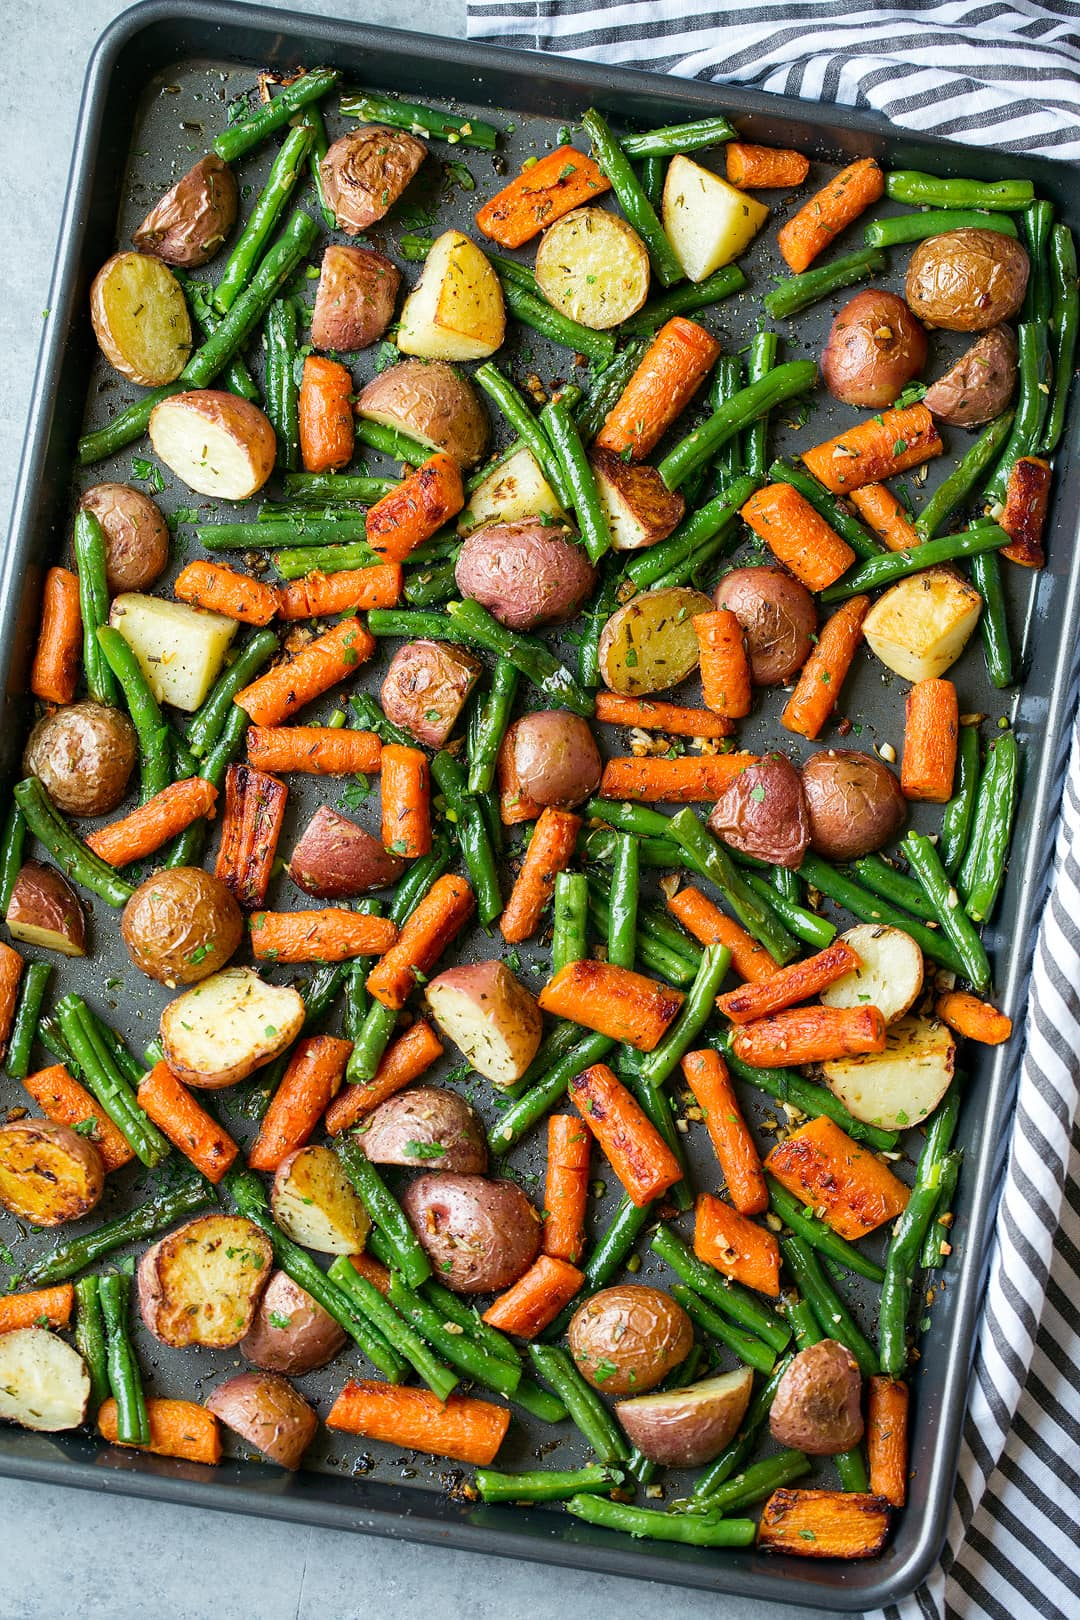 Roasted Vegetables including potatoes carrots and green beans with garlic herb seasoning. Shown here on a dark sheet pan after roasting.